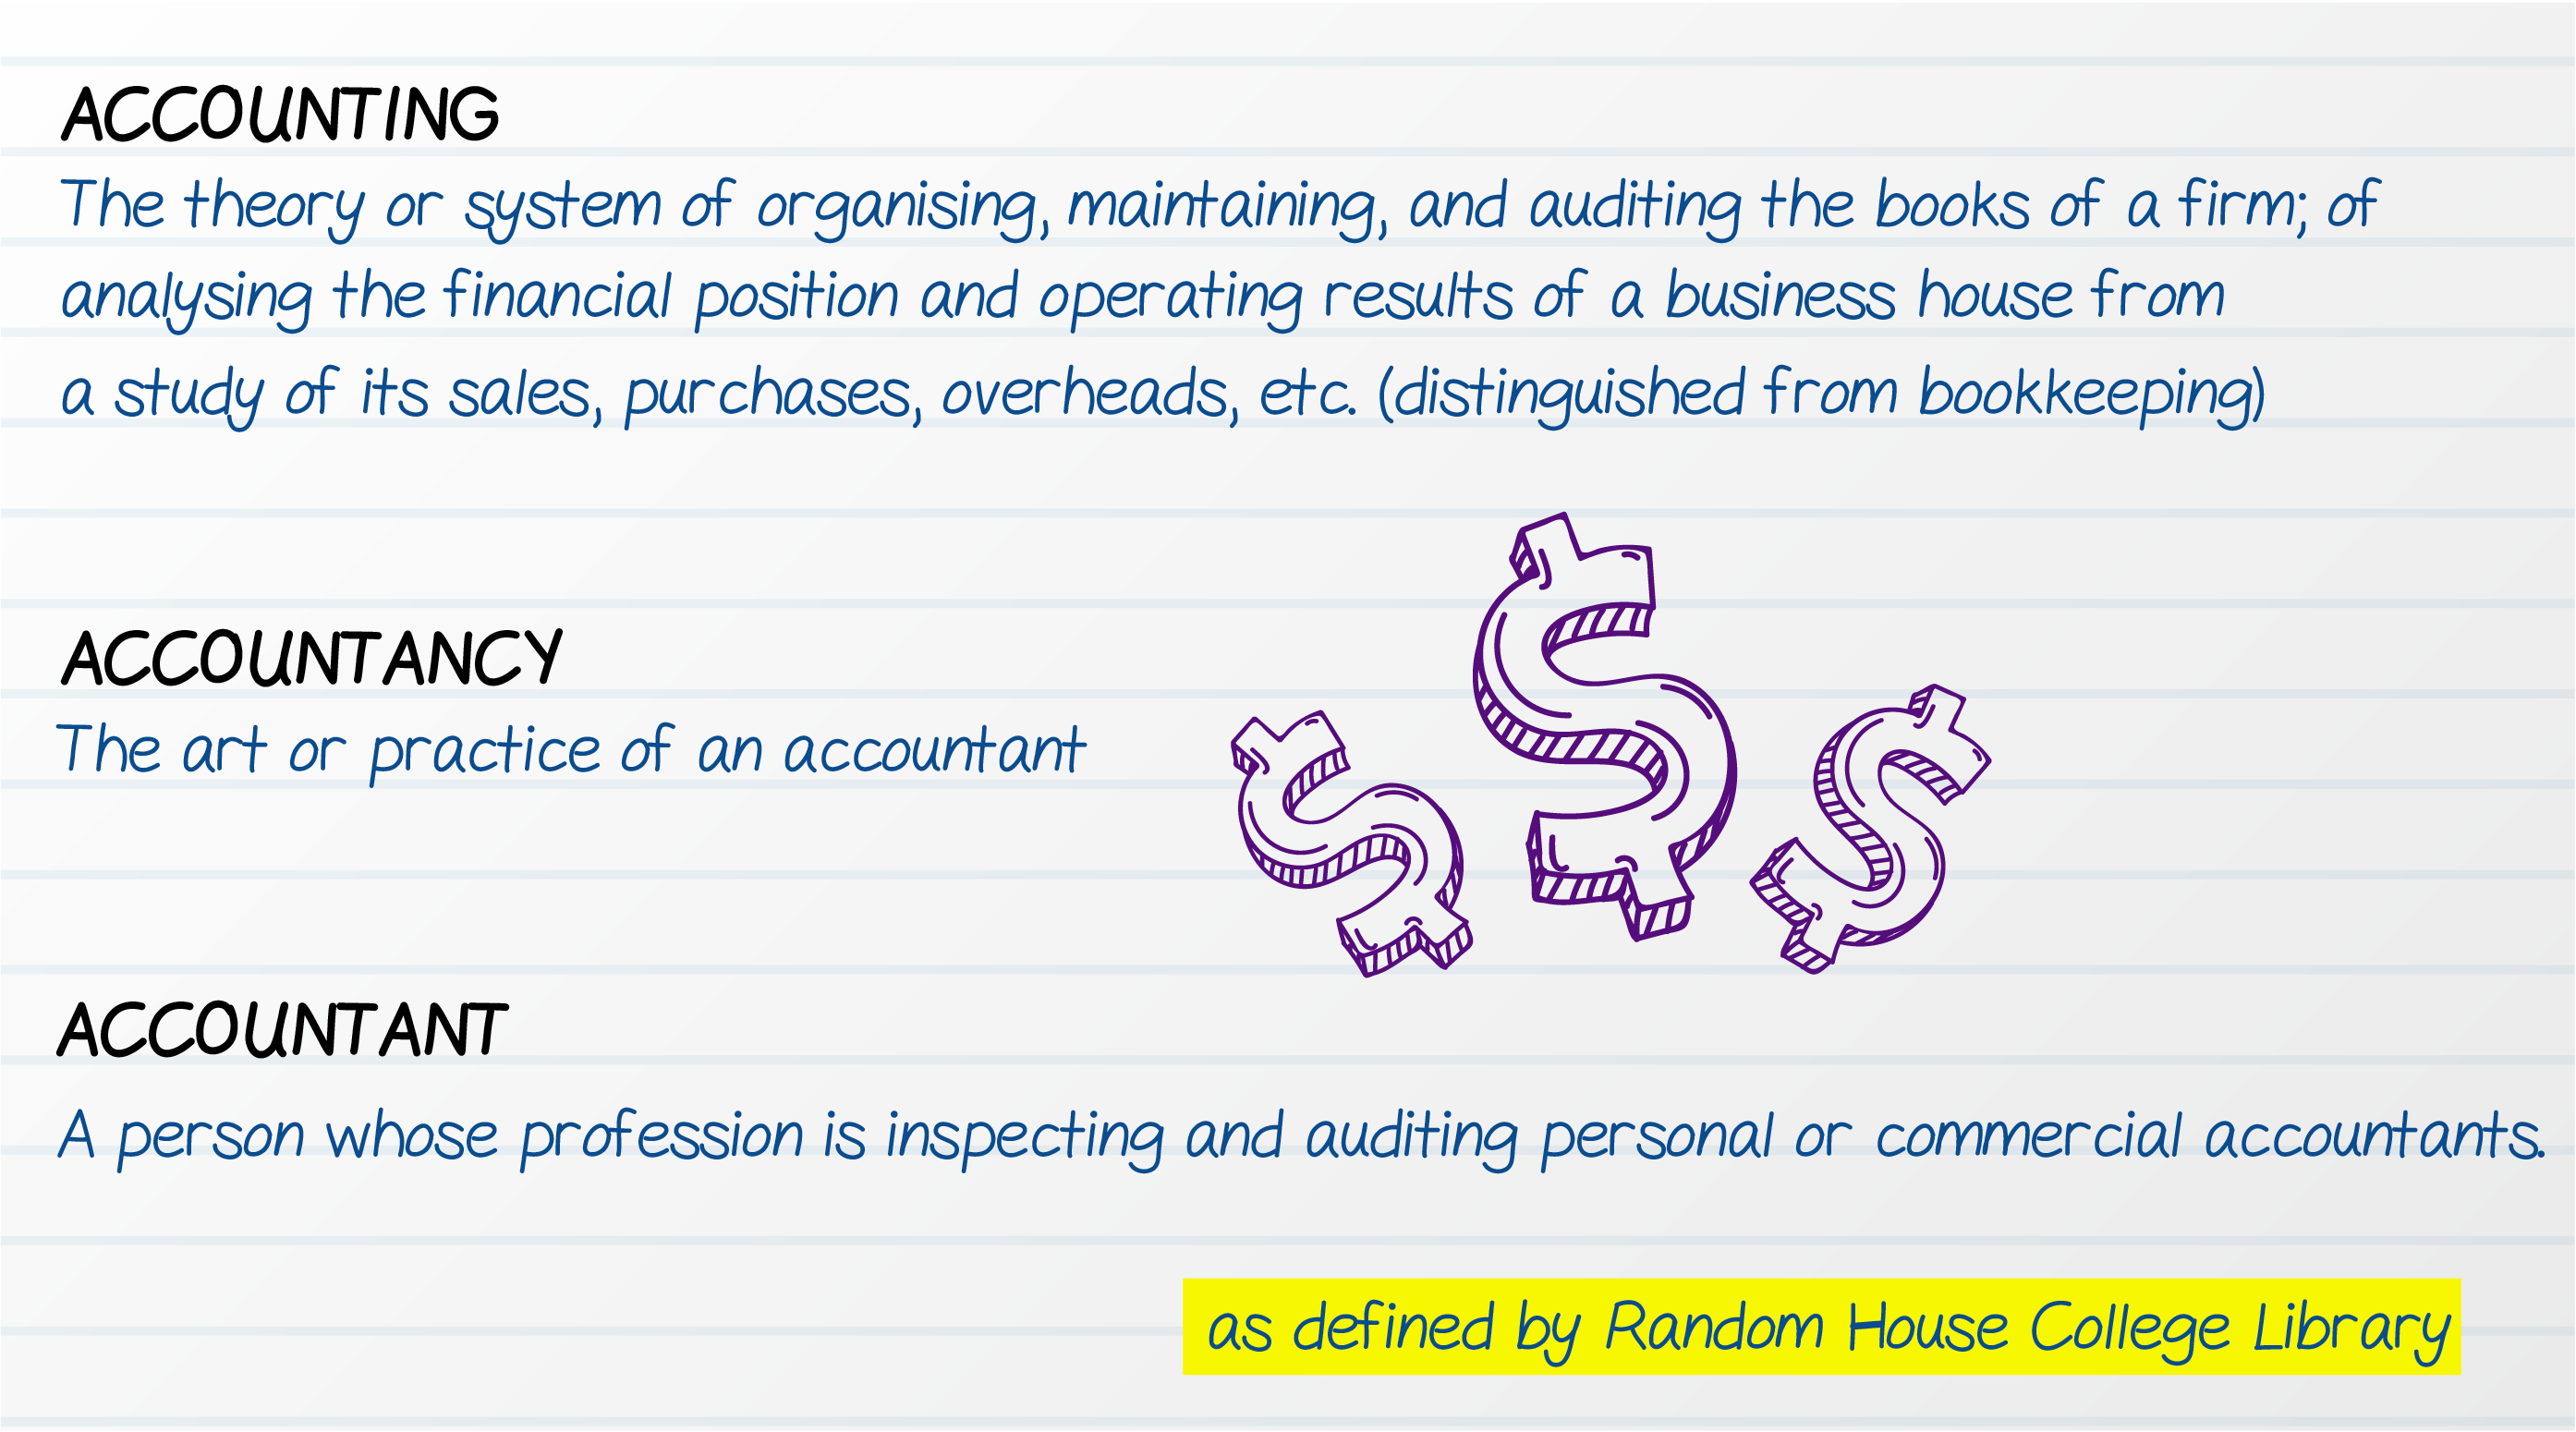 Accounting and other related terms